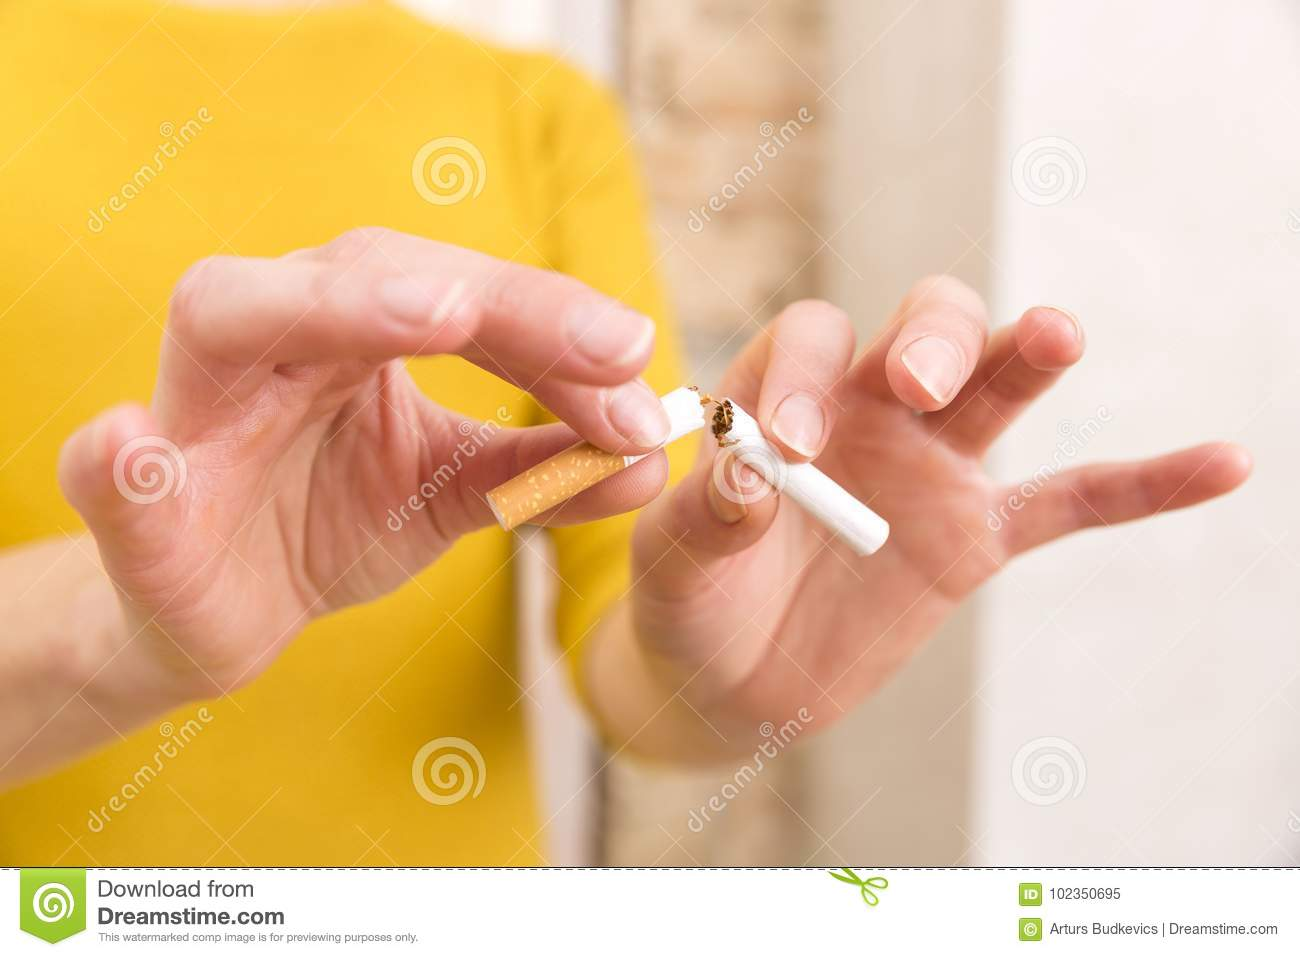 Young woman is breaking a cigarette, quit smoking concept